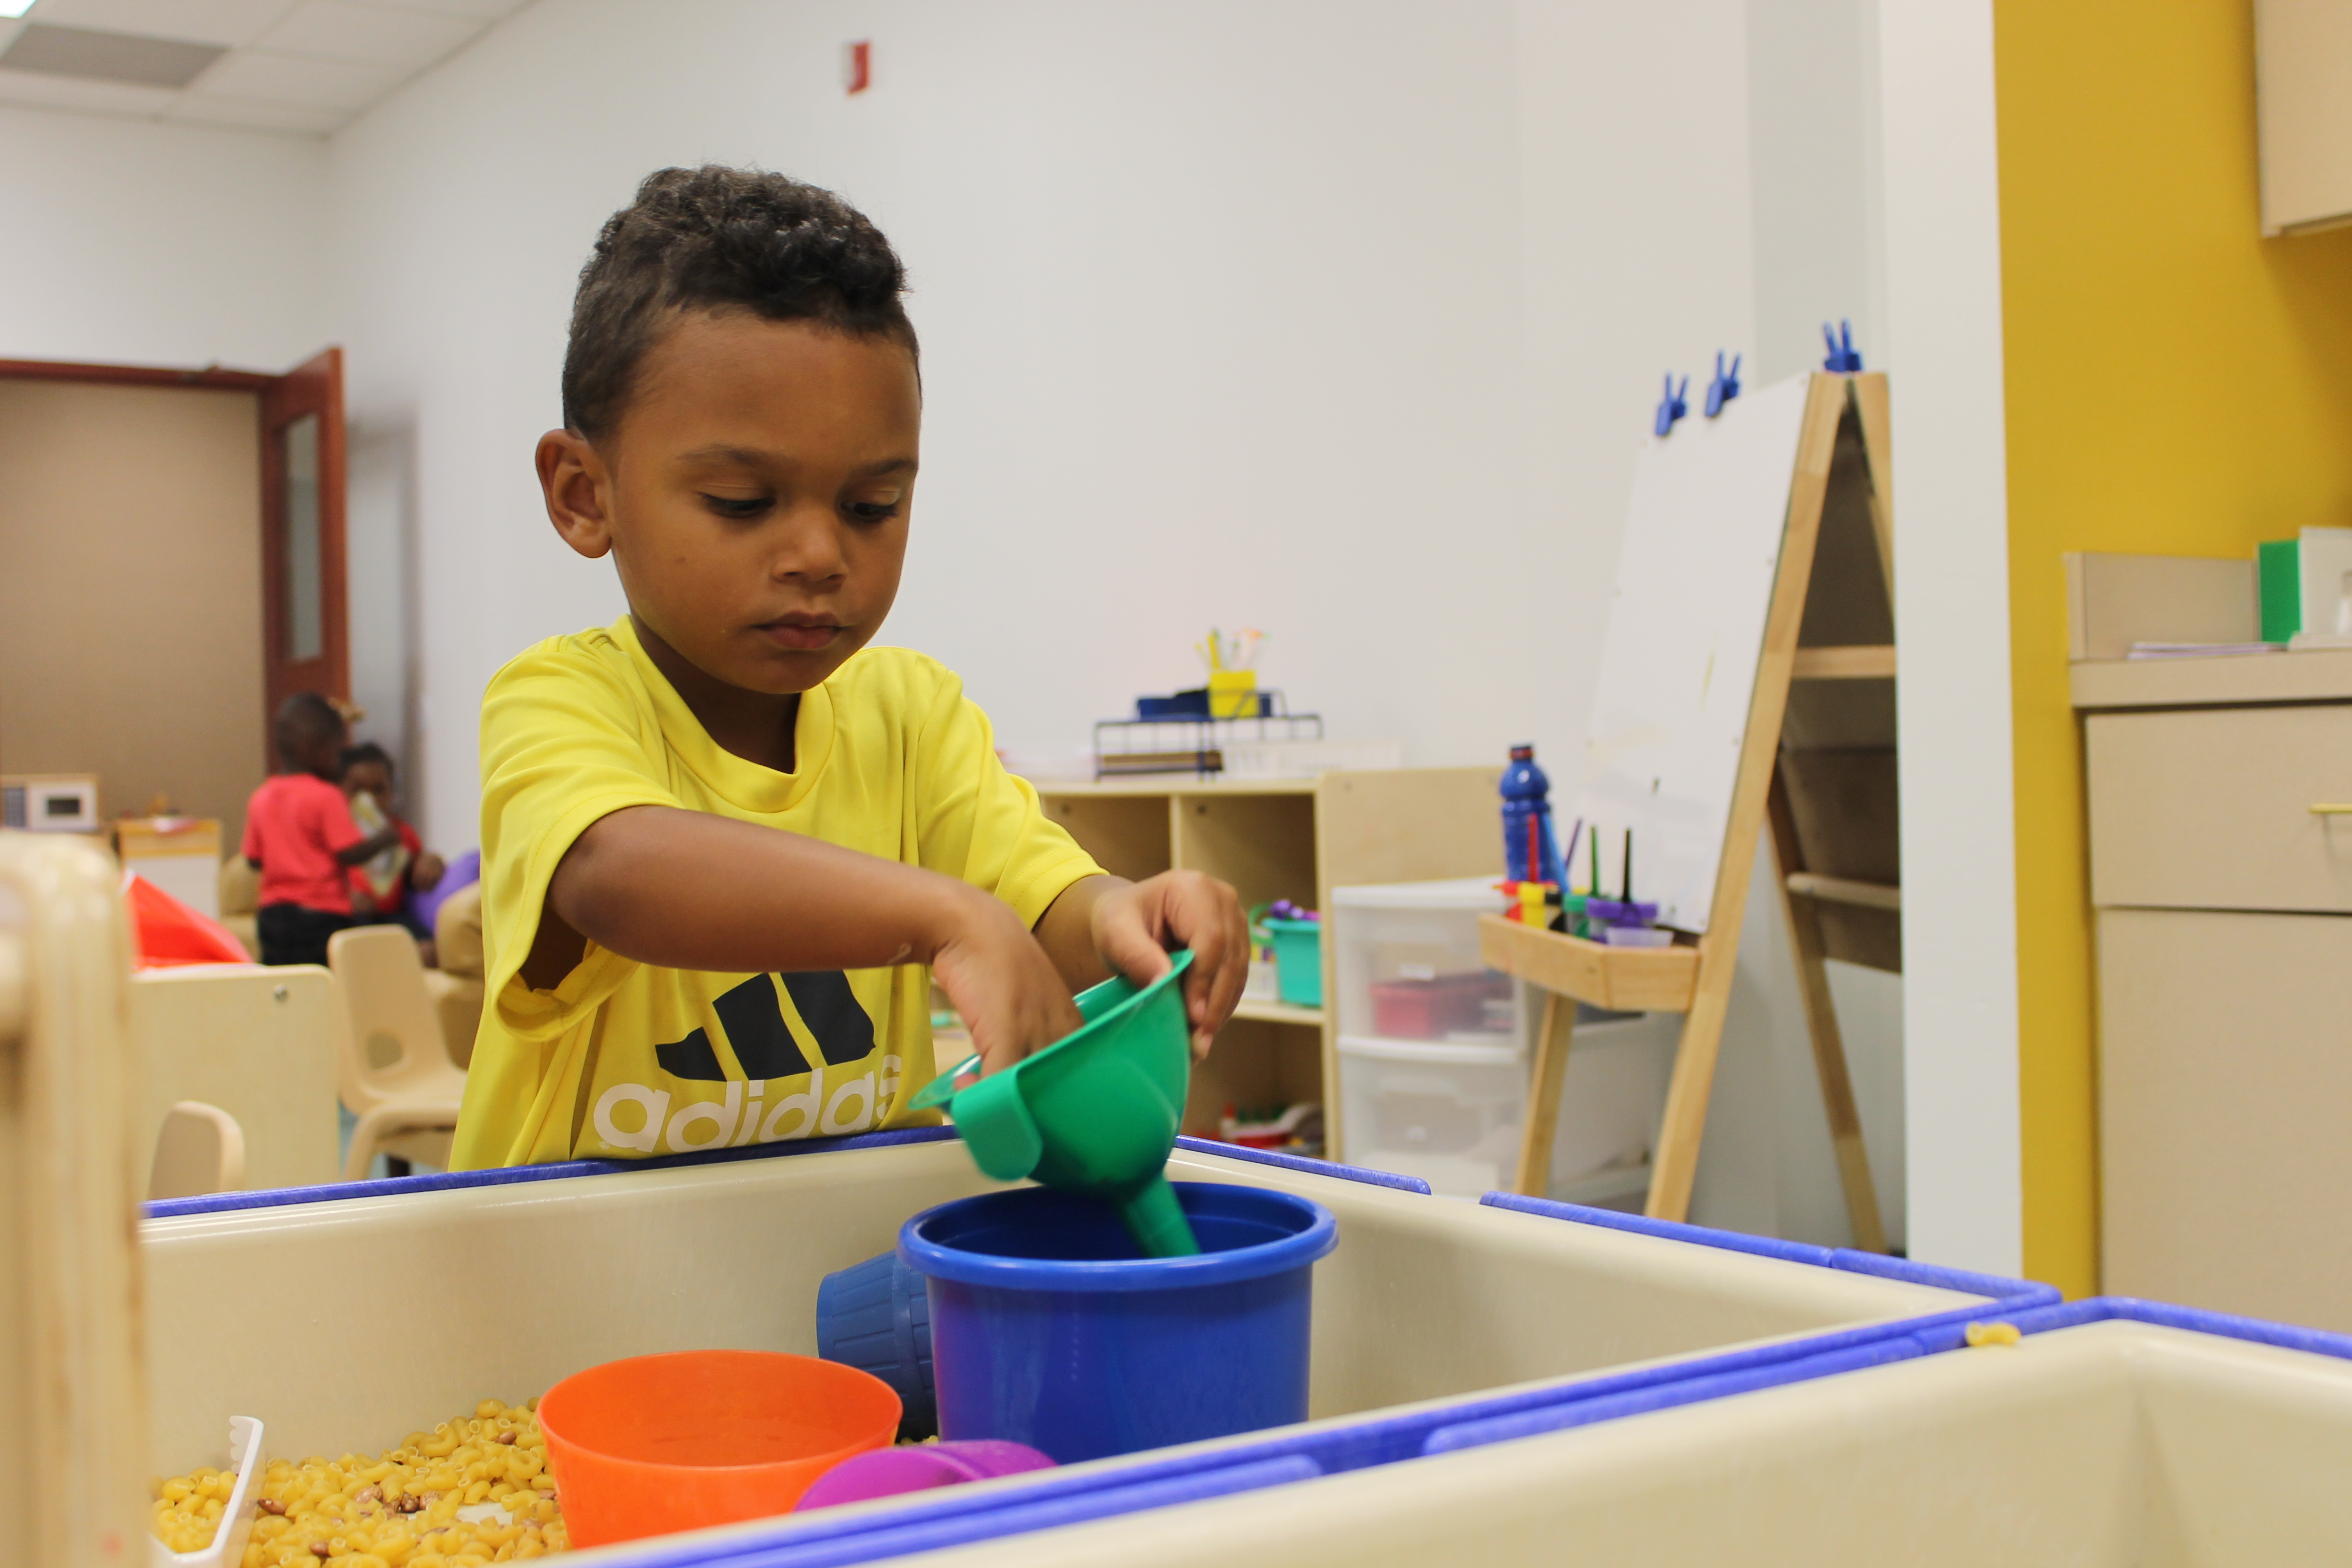 Three-year-old Ra'Jon Whitaker plays at a sensory center in his preschool classroom at Day Early Learning at Eastern Star Church.